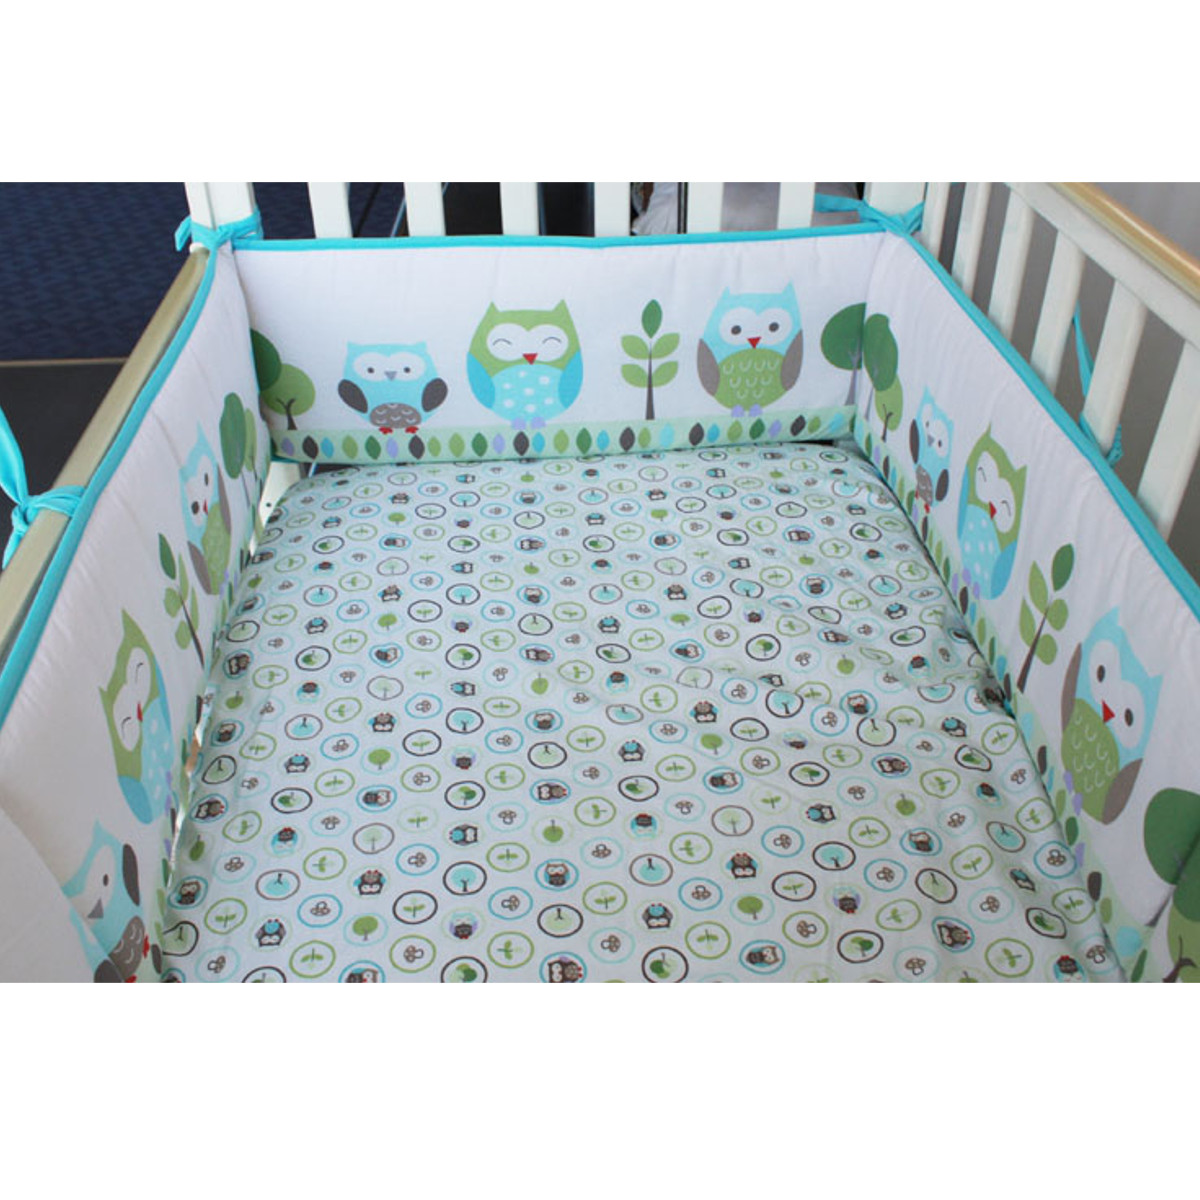 4Pcs/set Baby Infant Cot Crib Bumper Nursery Safety